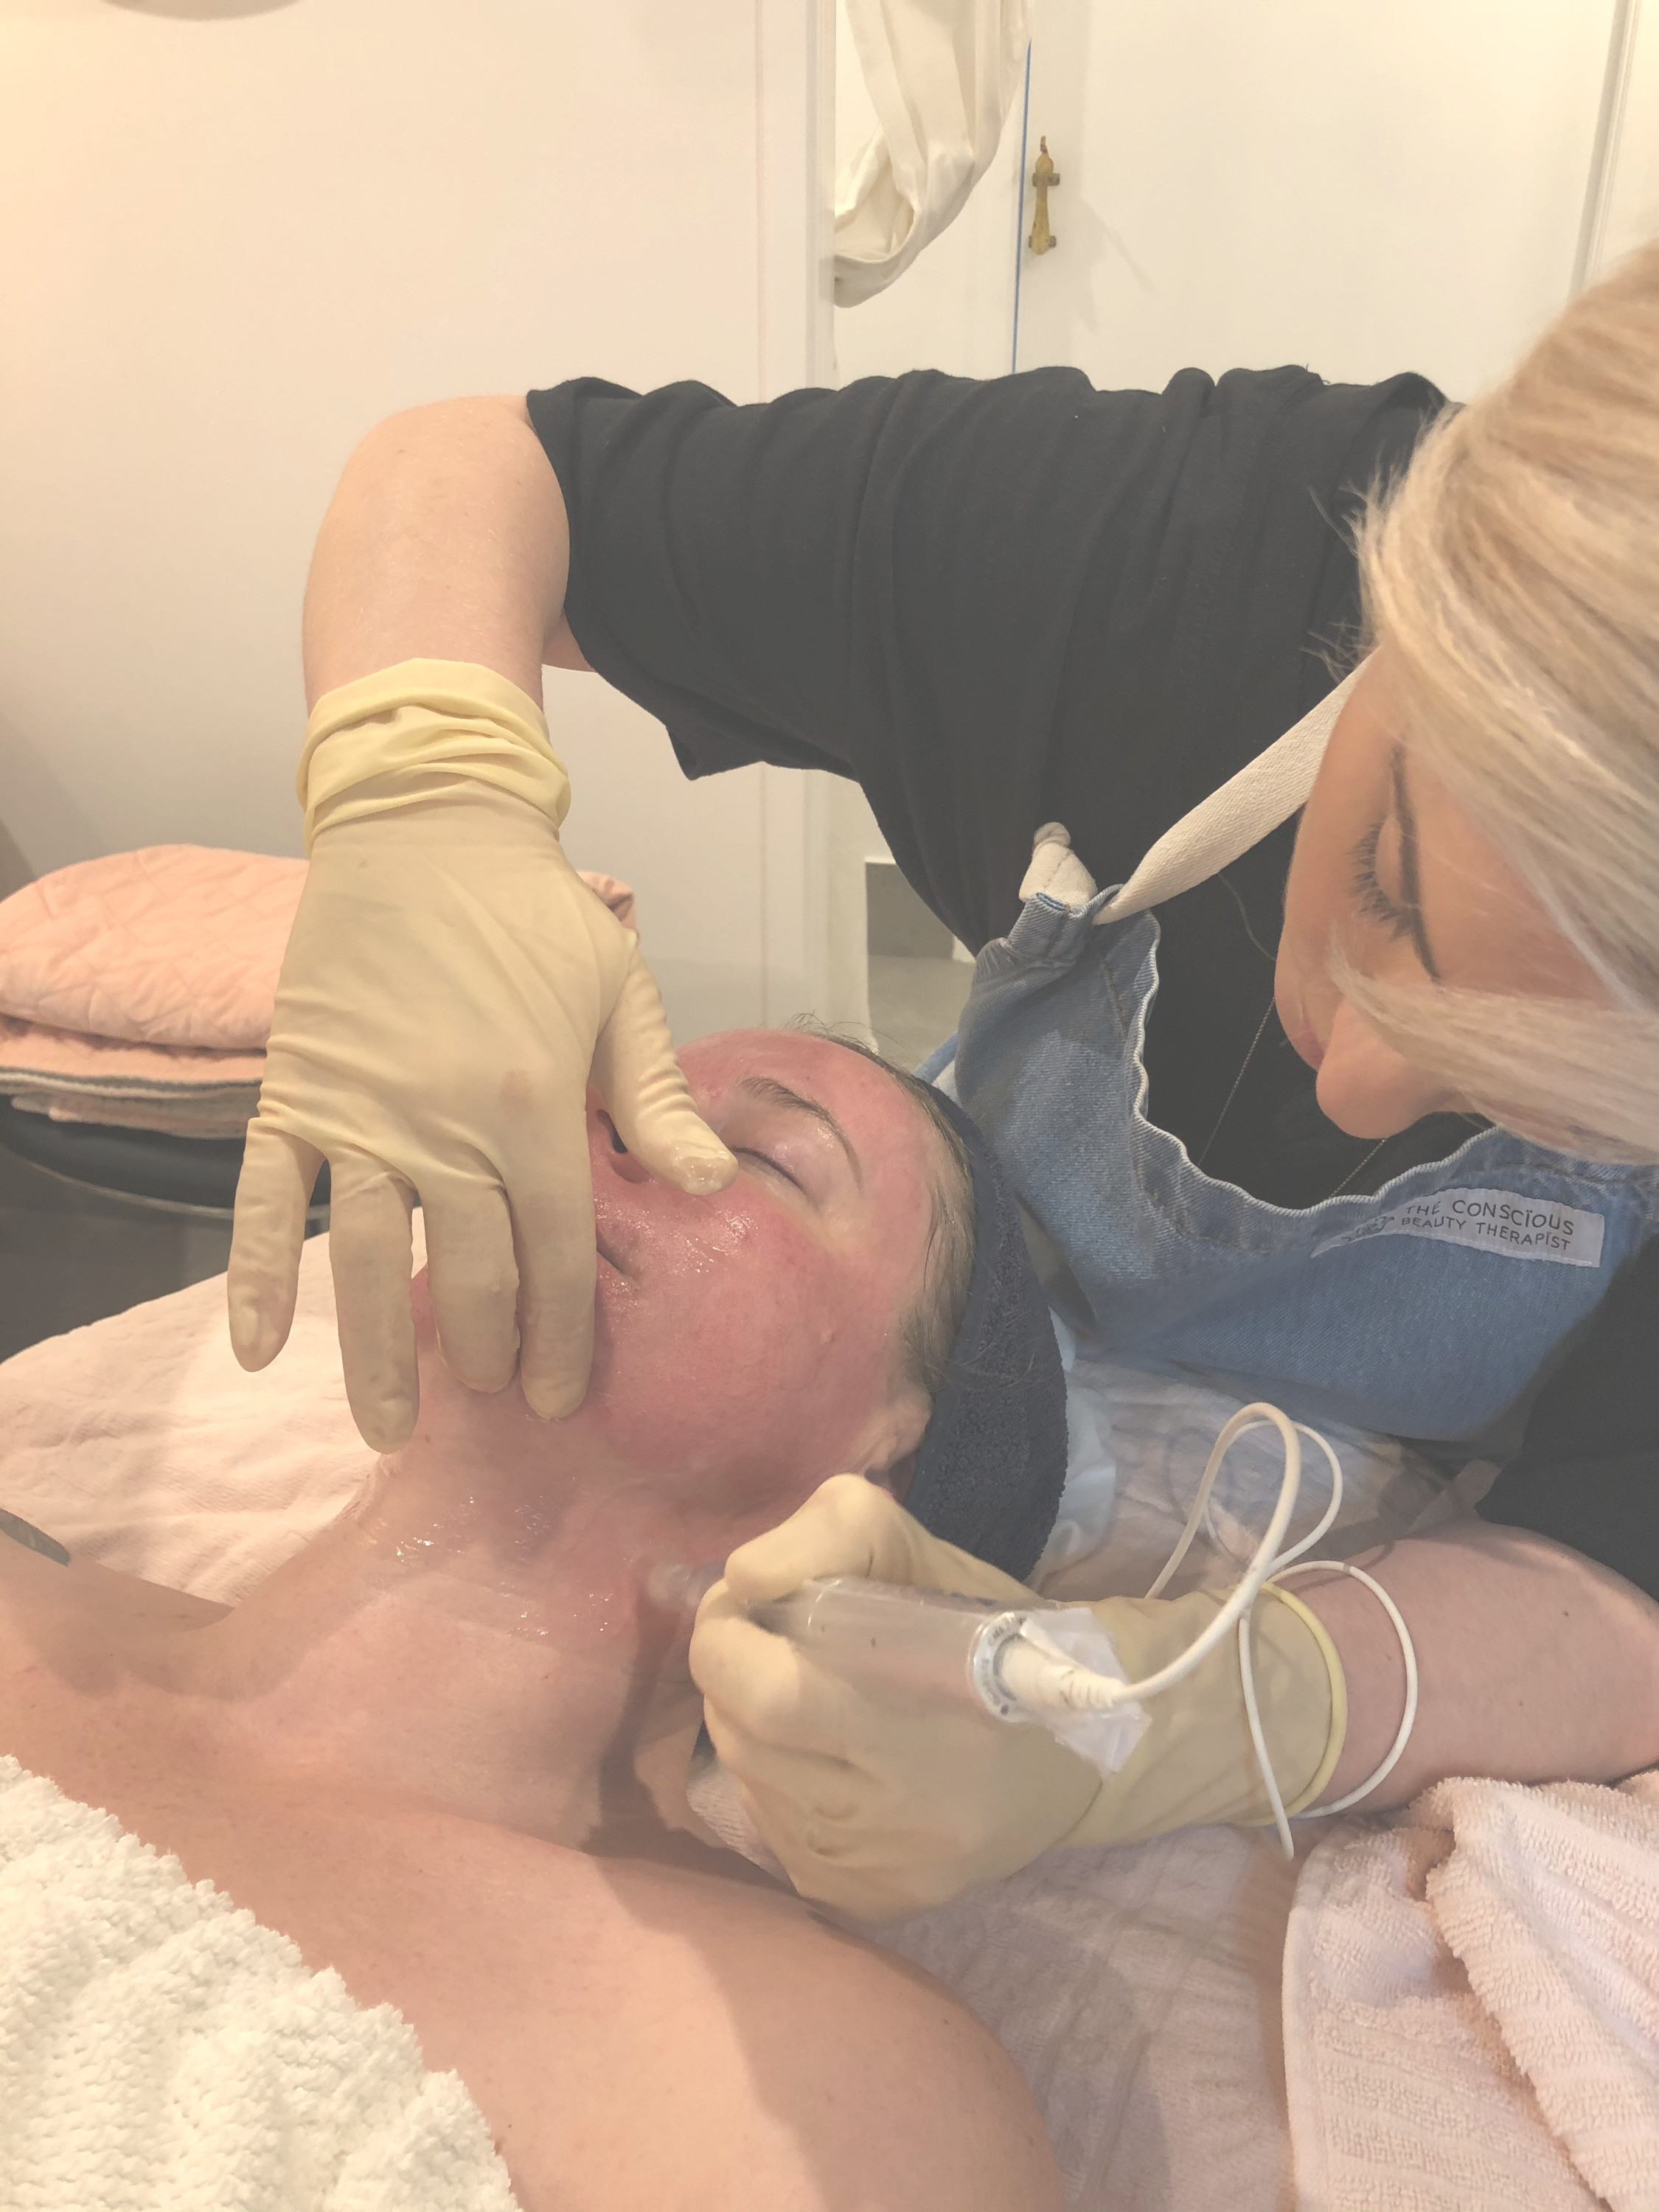 Exceed Skin Needling CONSULTATION